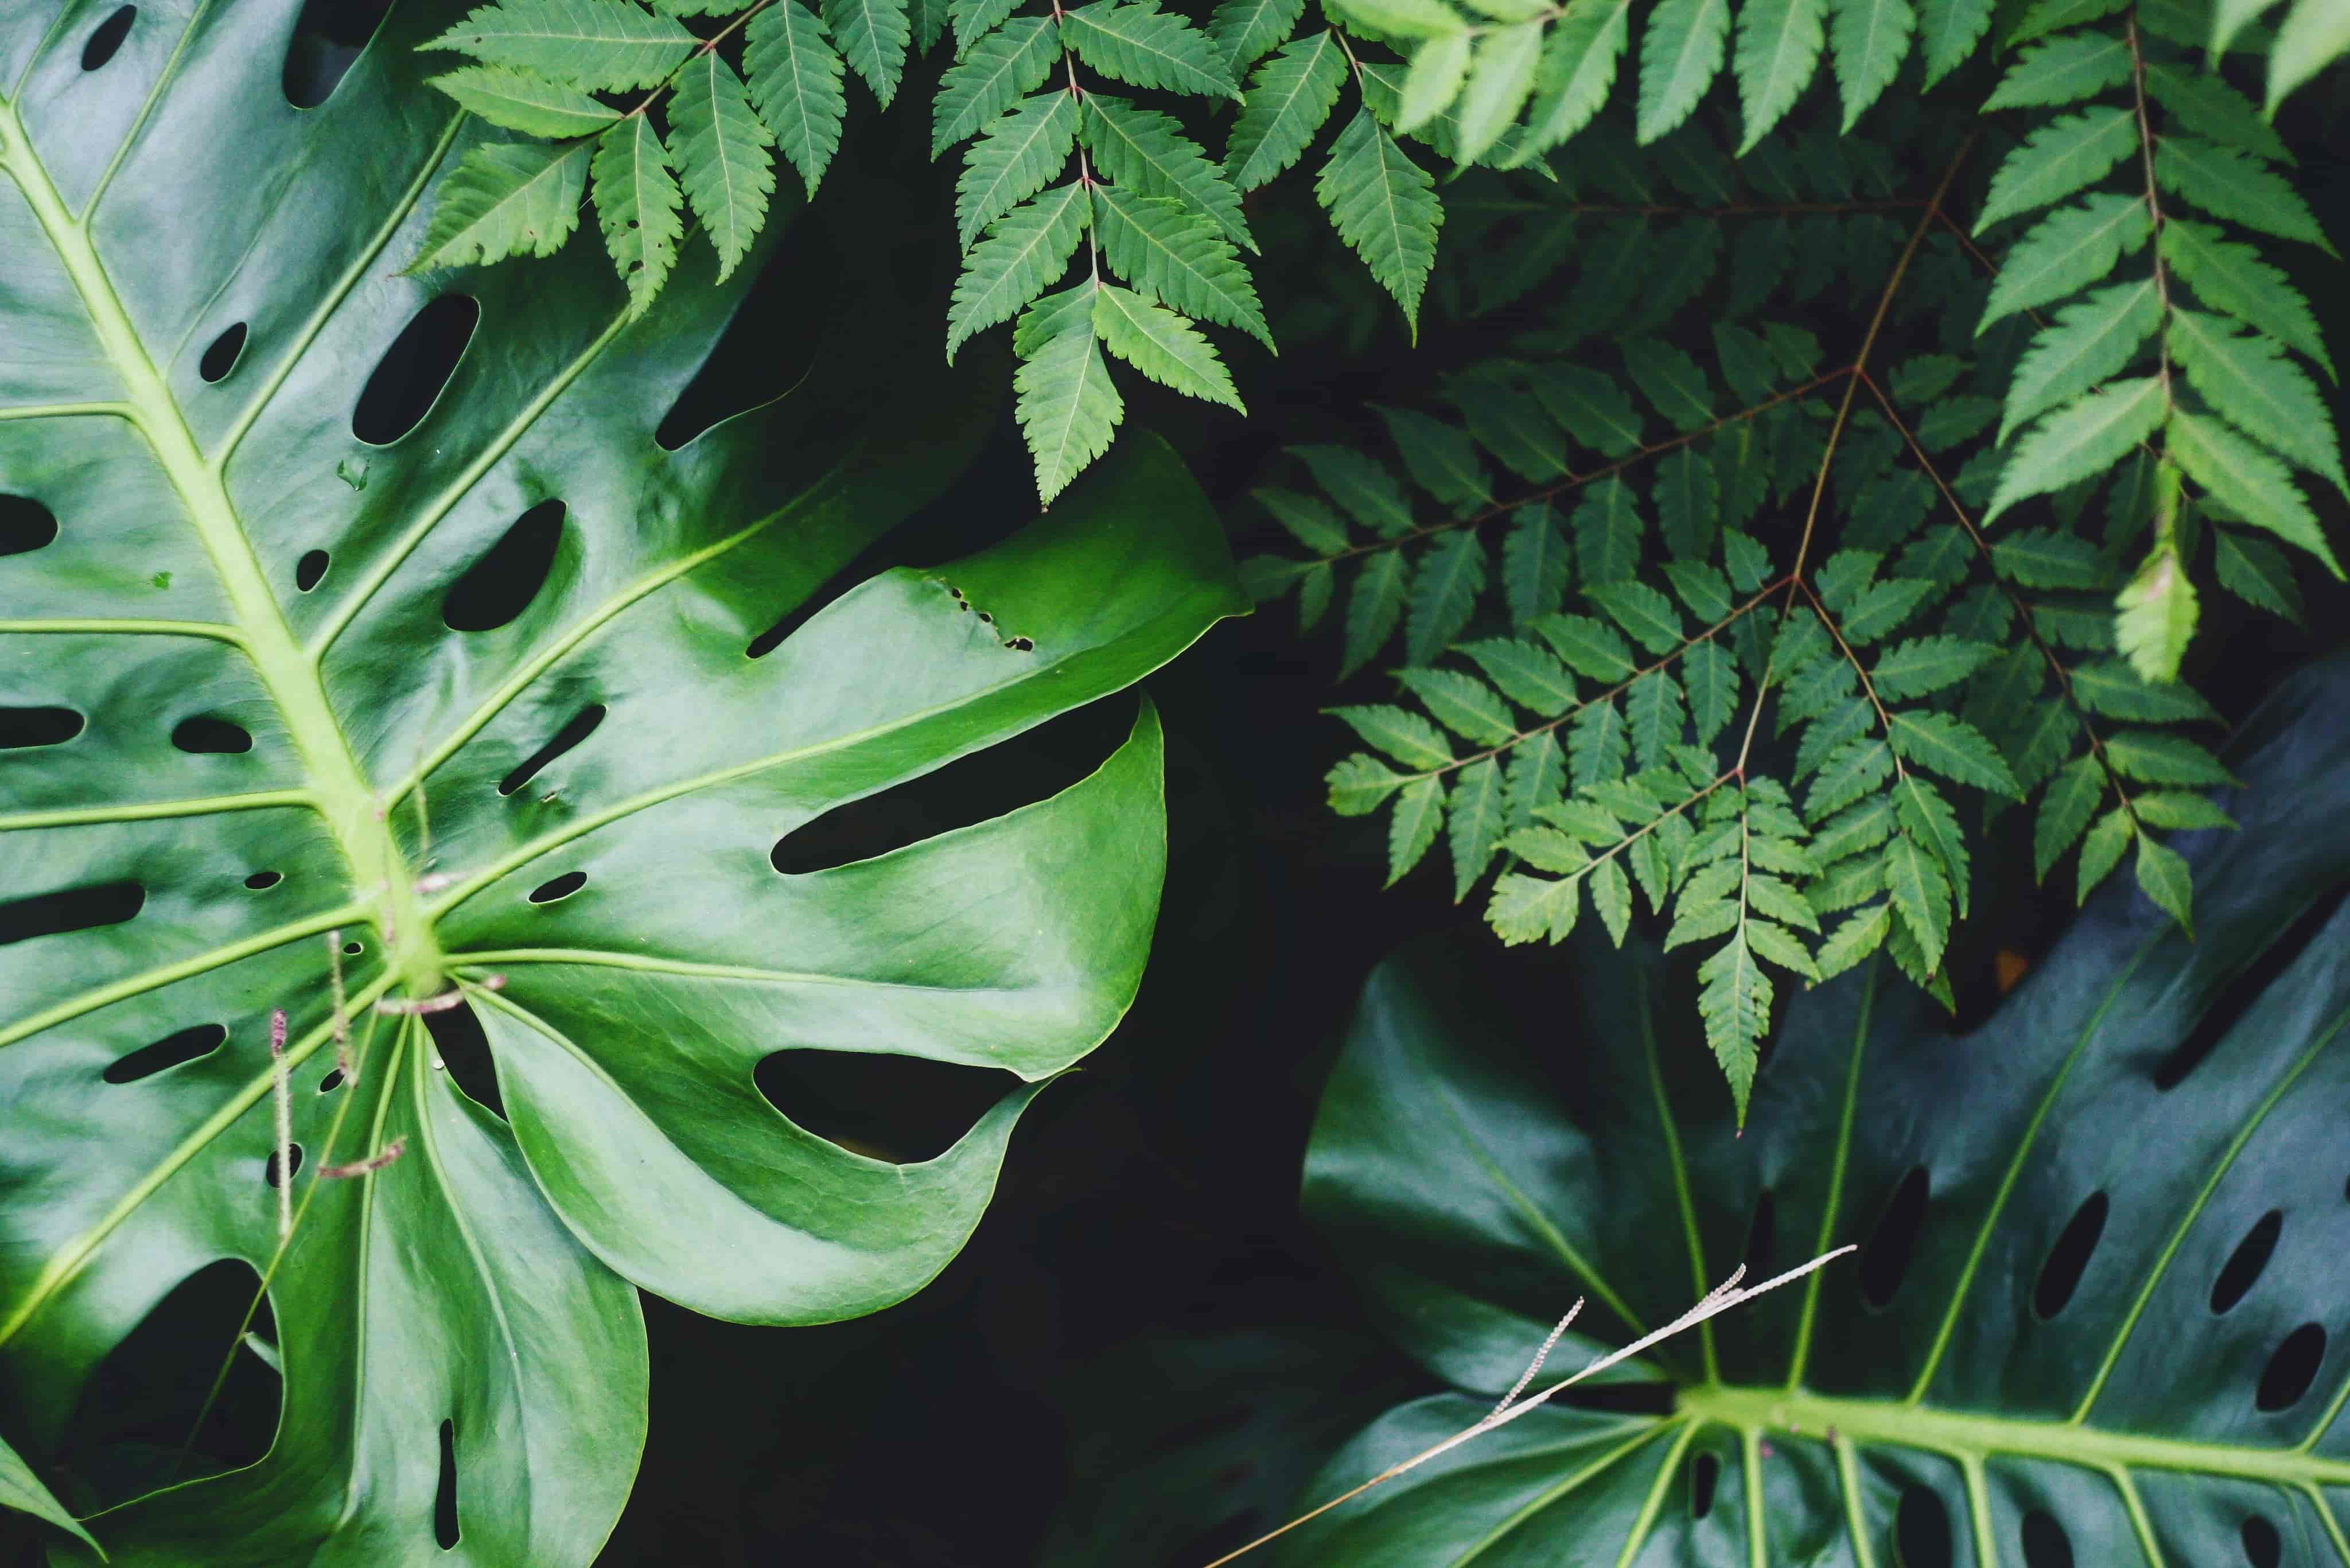 Different types of green plants.